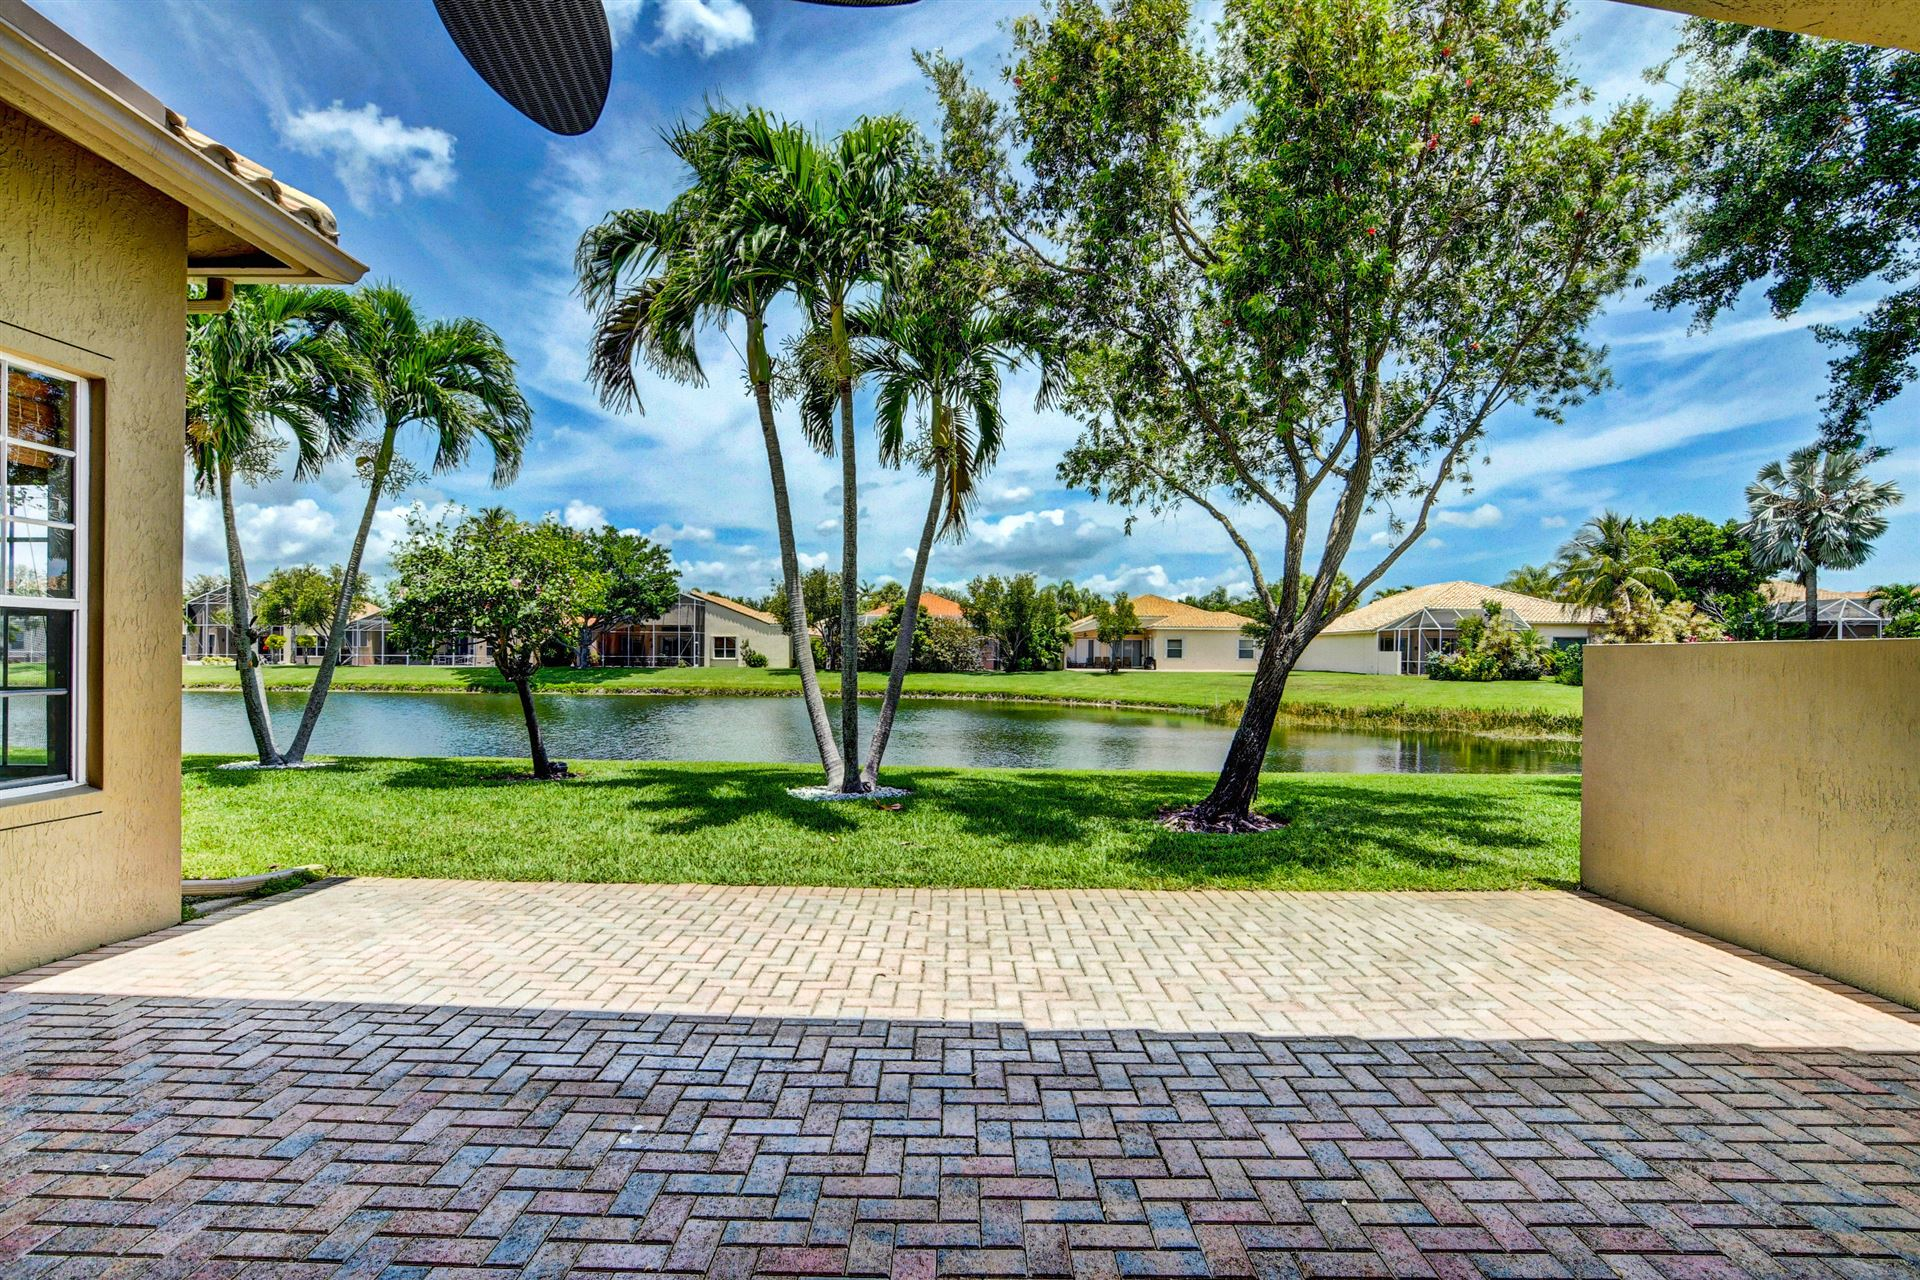 6703 Catania Drive, Boynton Beach, FL 33472 - MLS#: RX-10715808